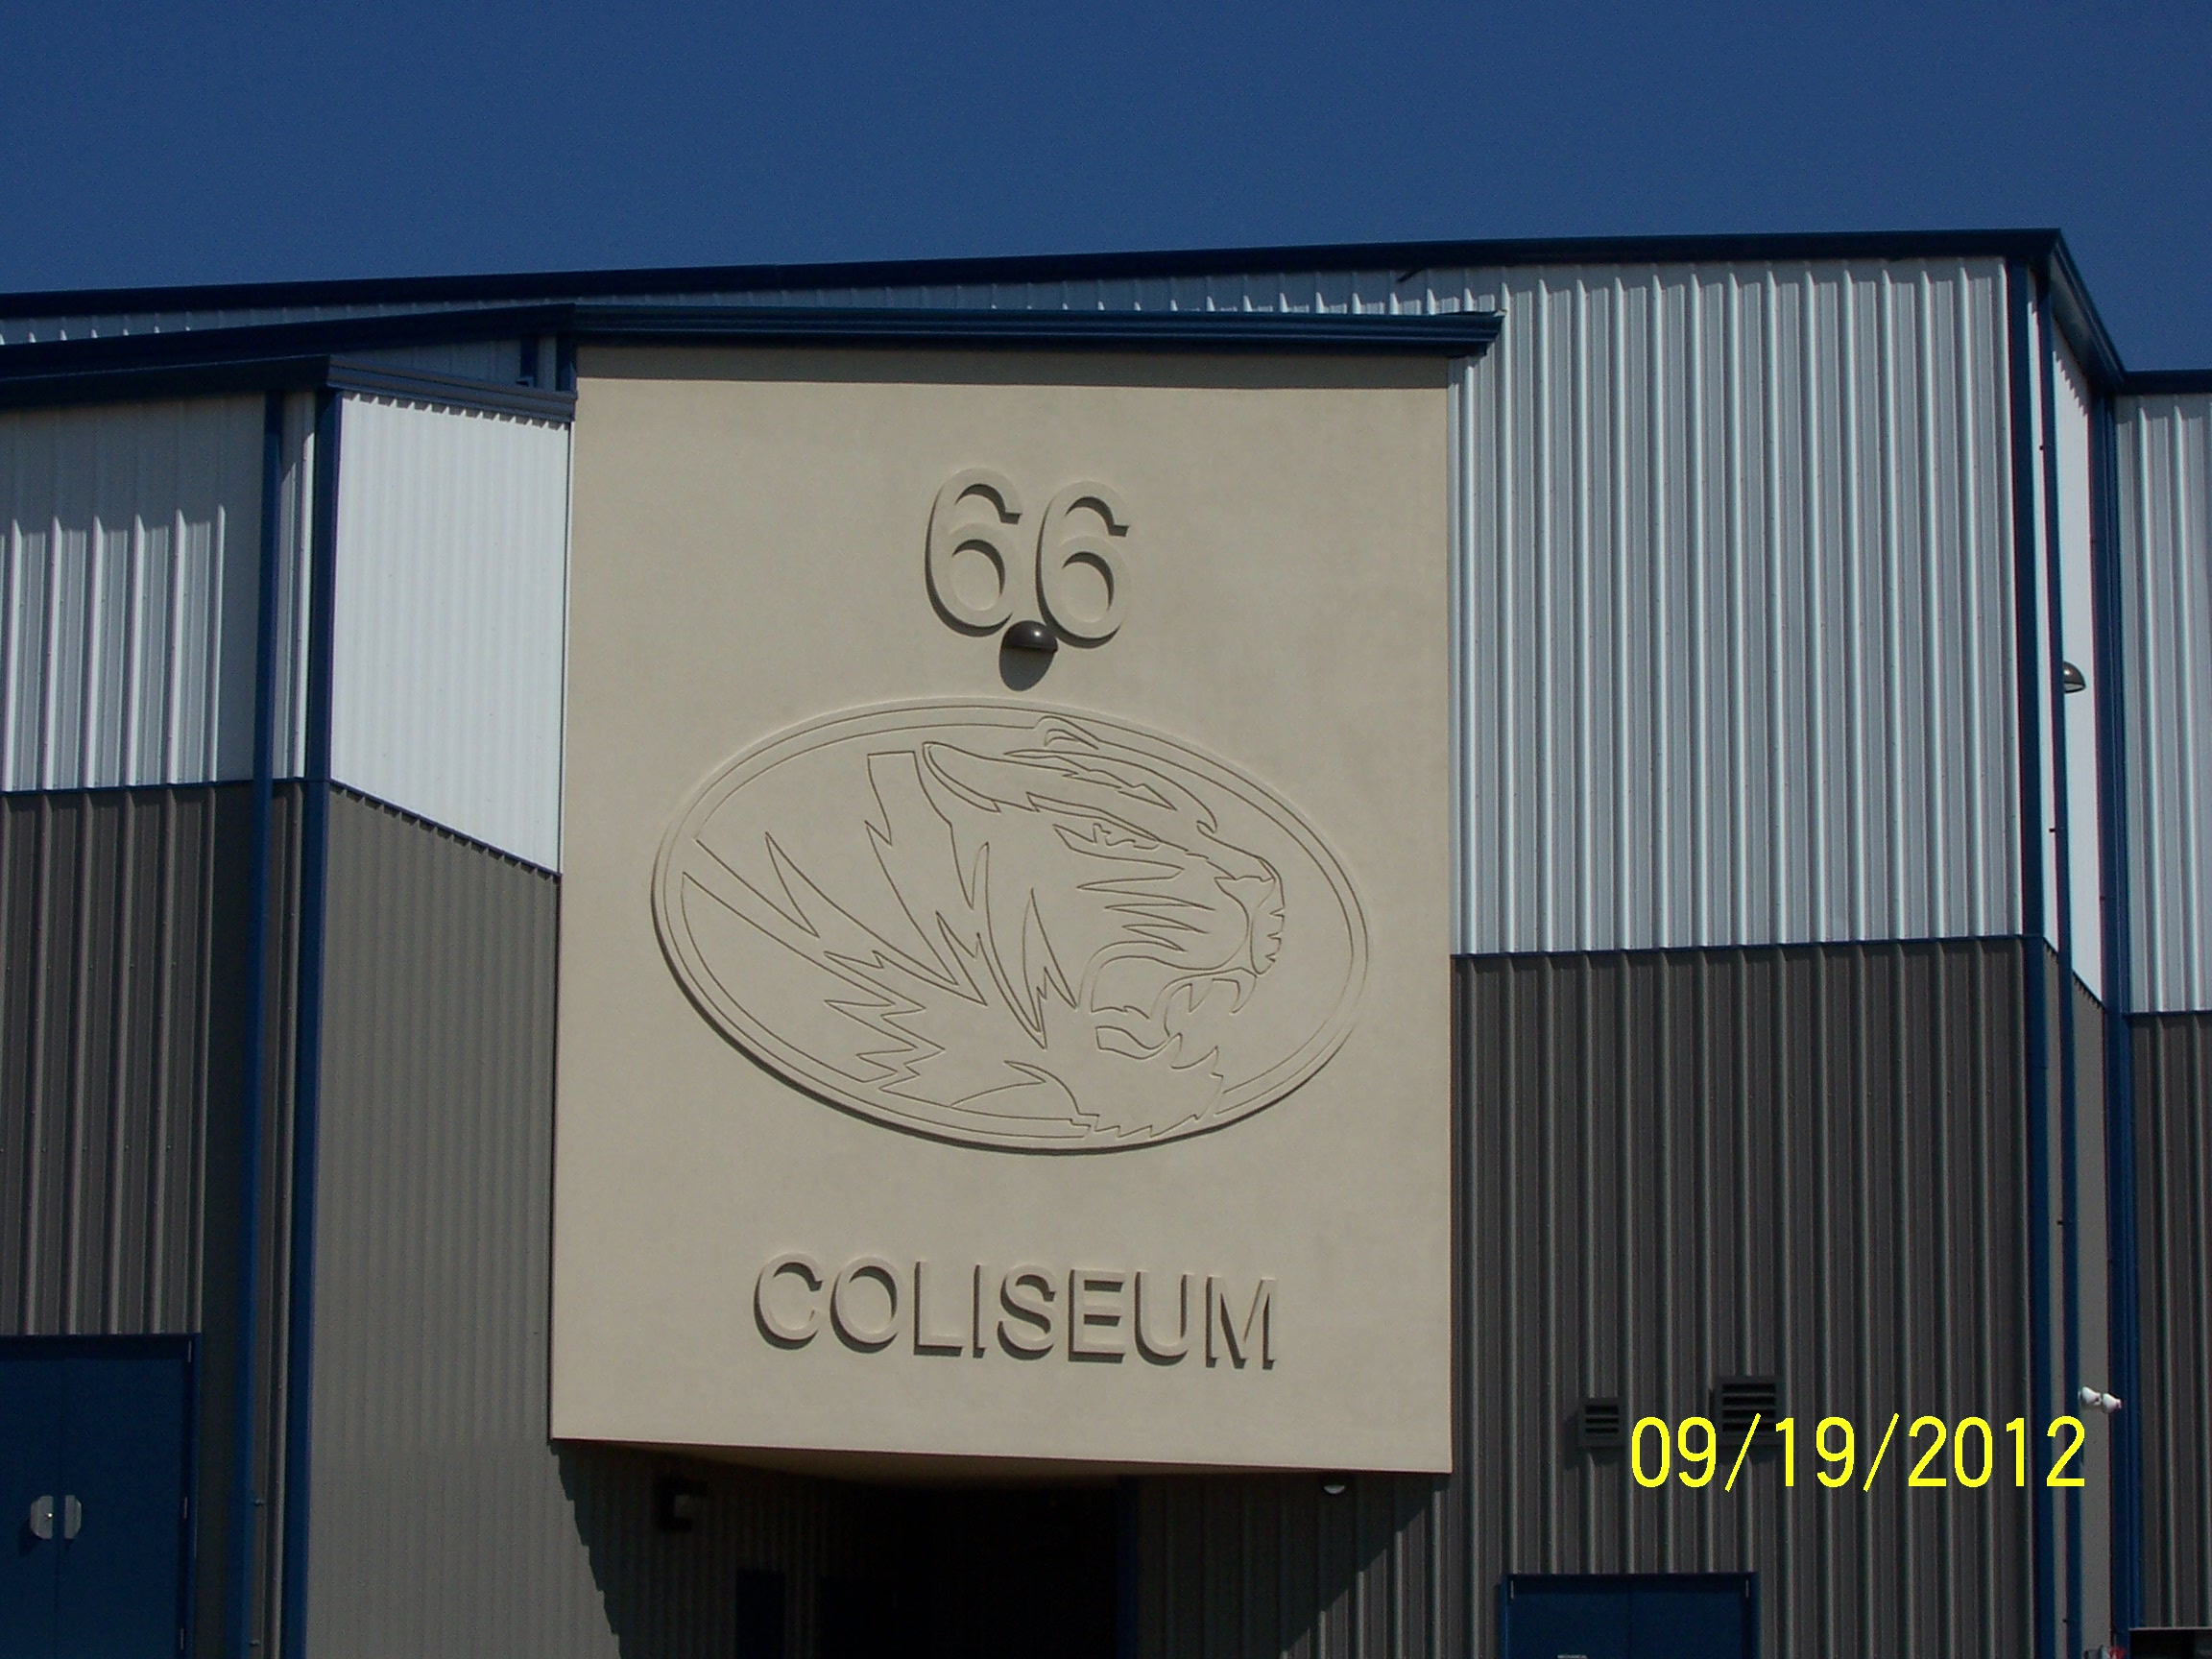 Route 66 Coliseum sign